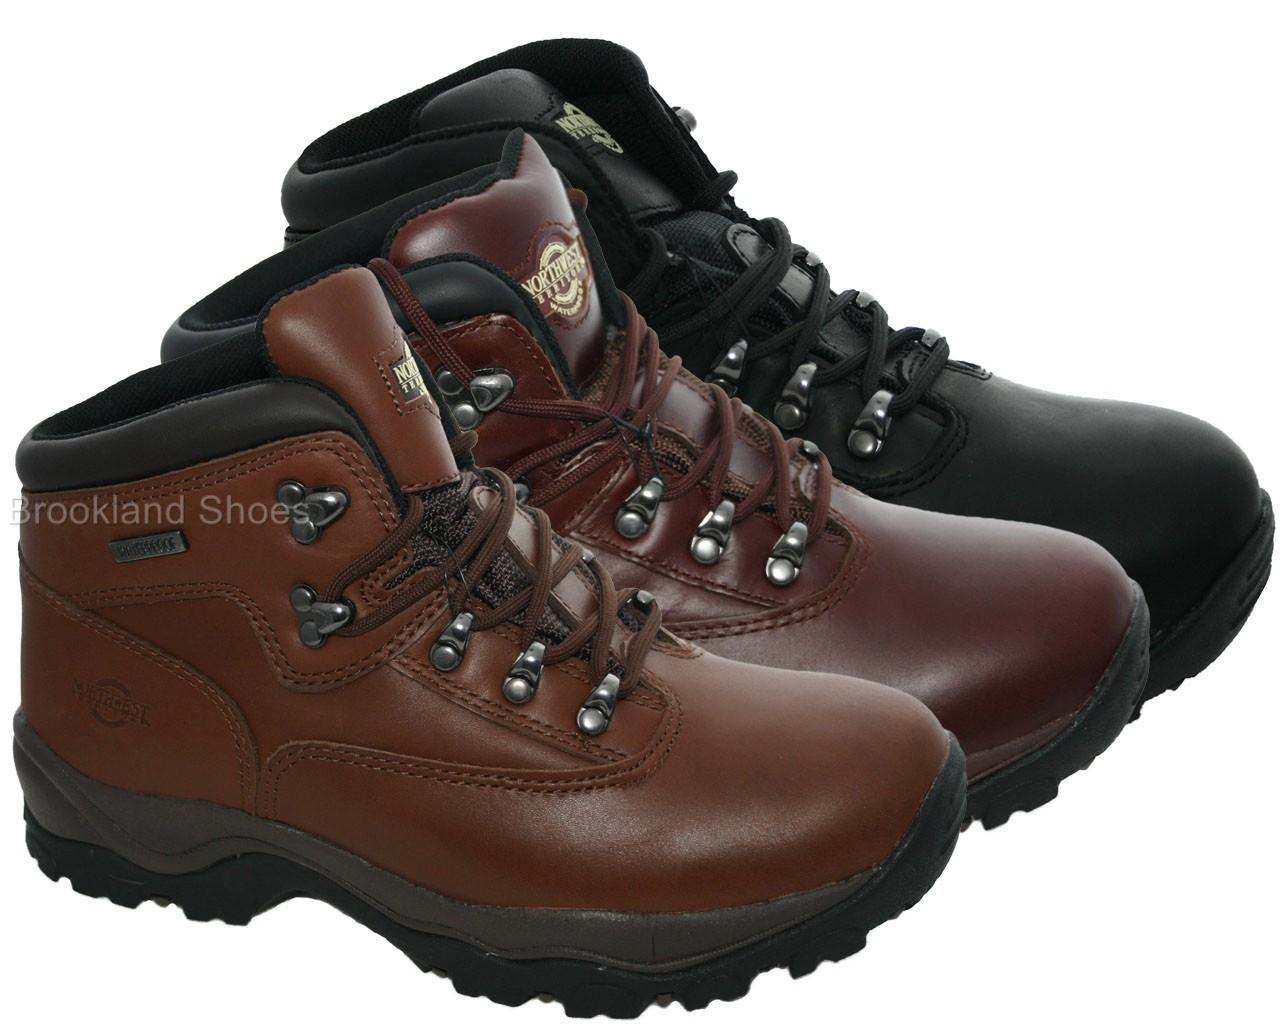 Mens-Northwest-Territory-Inuvik-Leather-Walking-Hiking-Walking-Boot-Sizes-6-13